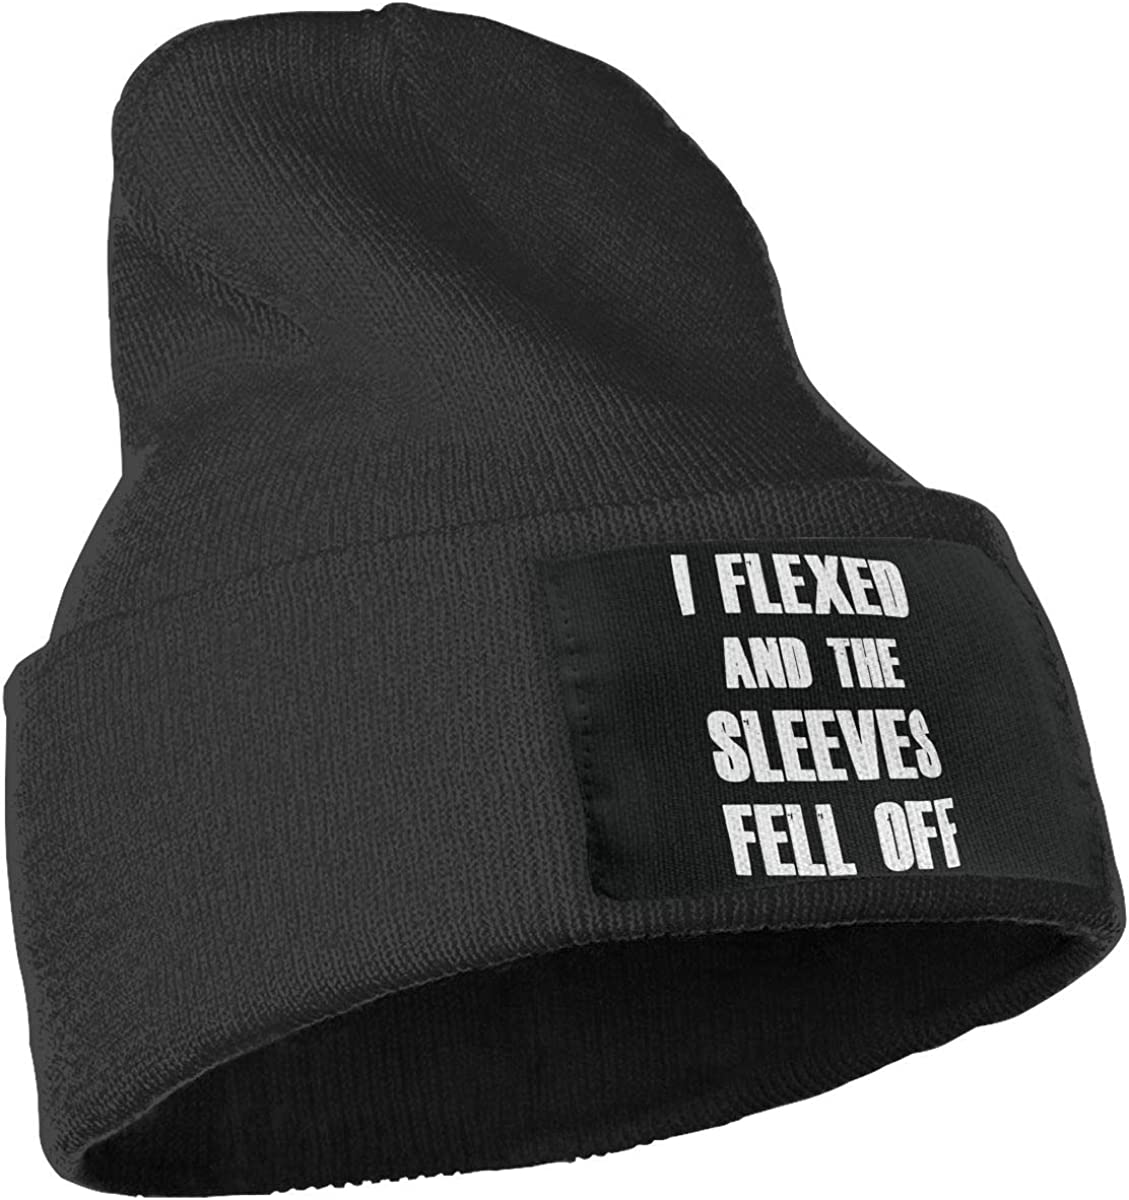 I Flexed and The Sleeves Fell Off Warm Winter Hat Knit Beanie Skull Cap Cuff Beanie Hat Winter Hats for Men /& Women